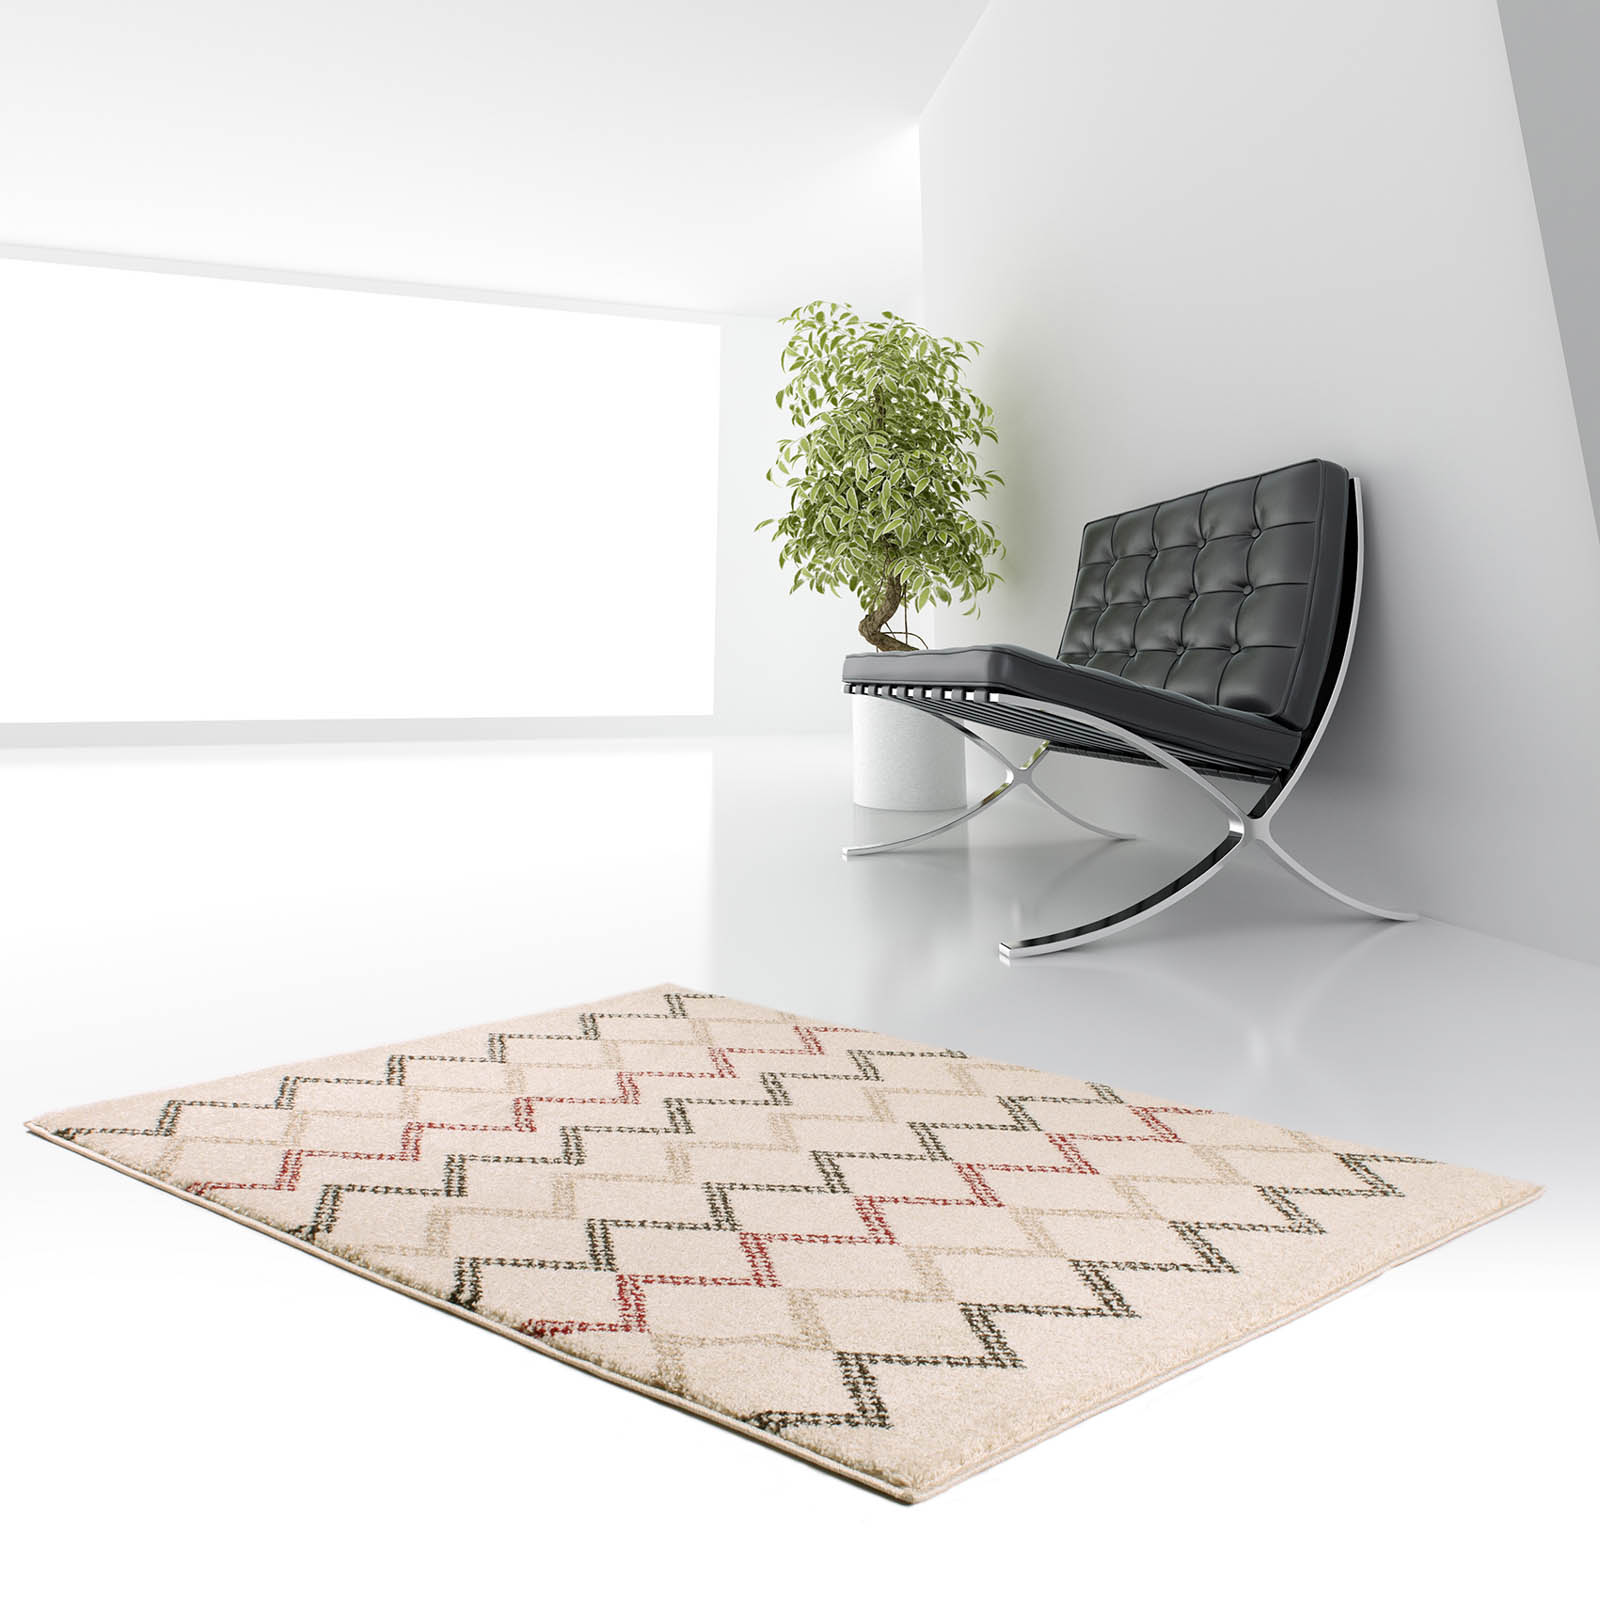 Marrakesh Rugs 2651 in Bone and Red